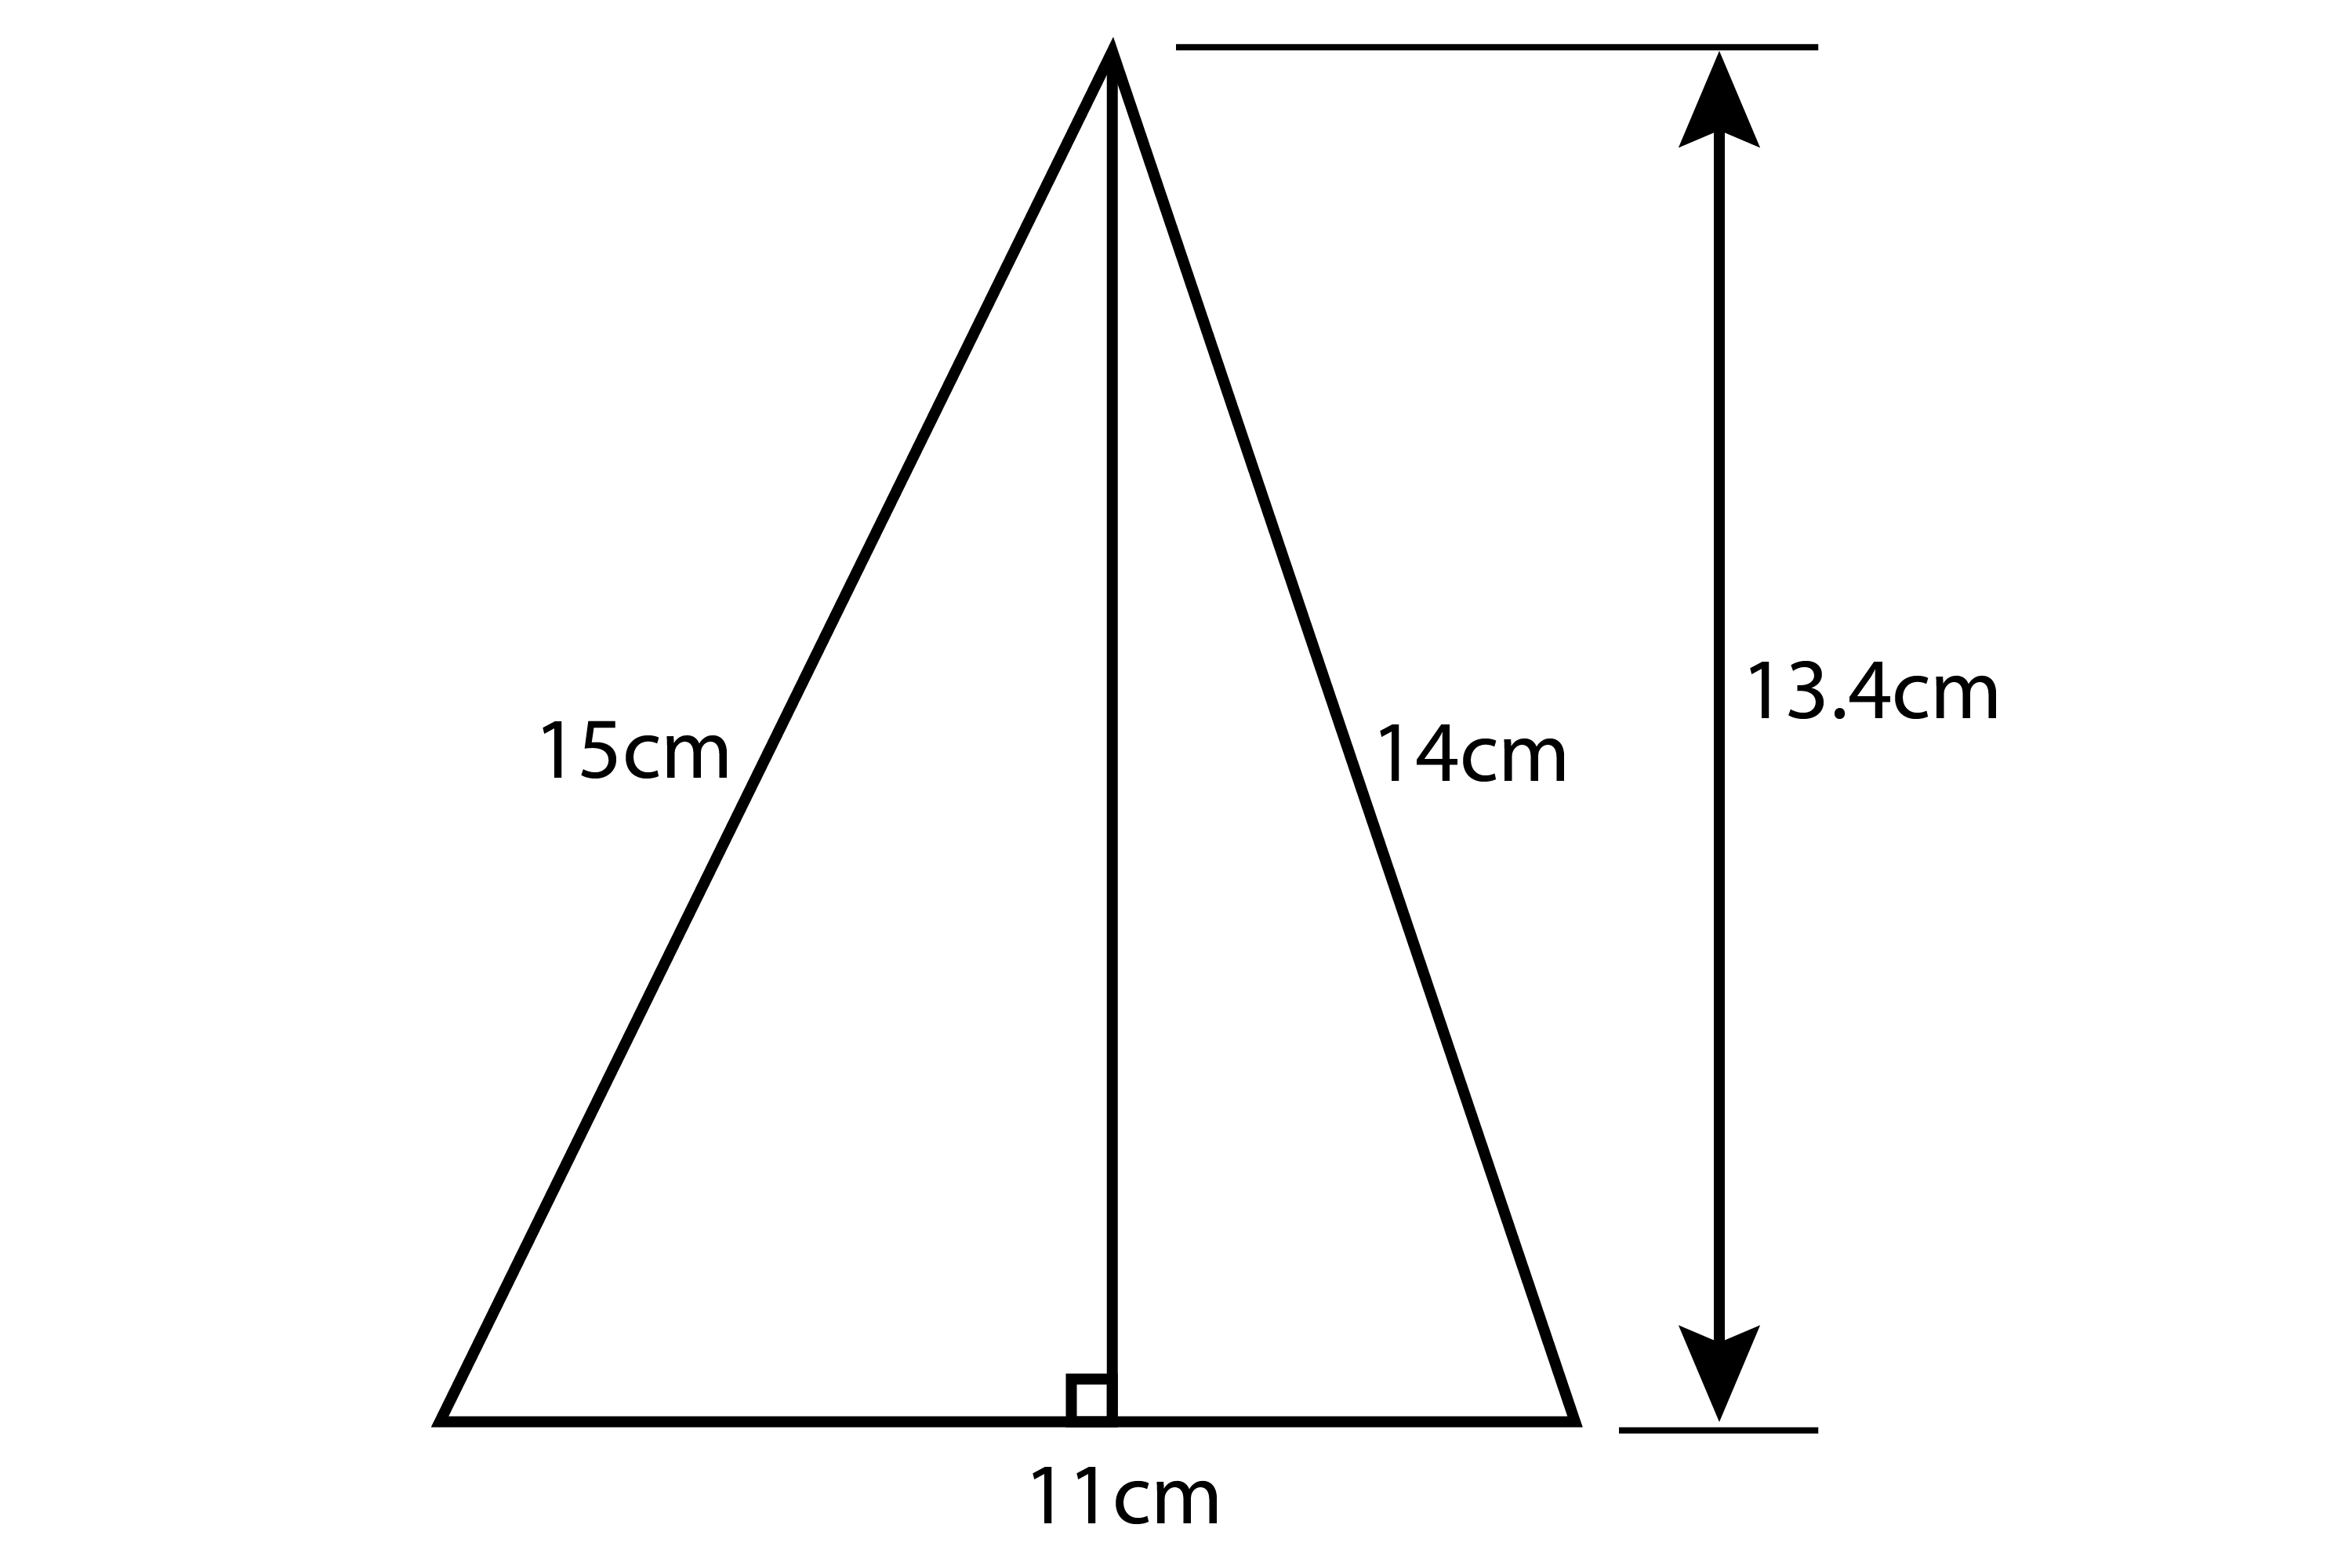 Try and work out the area of this triangle